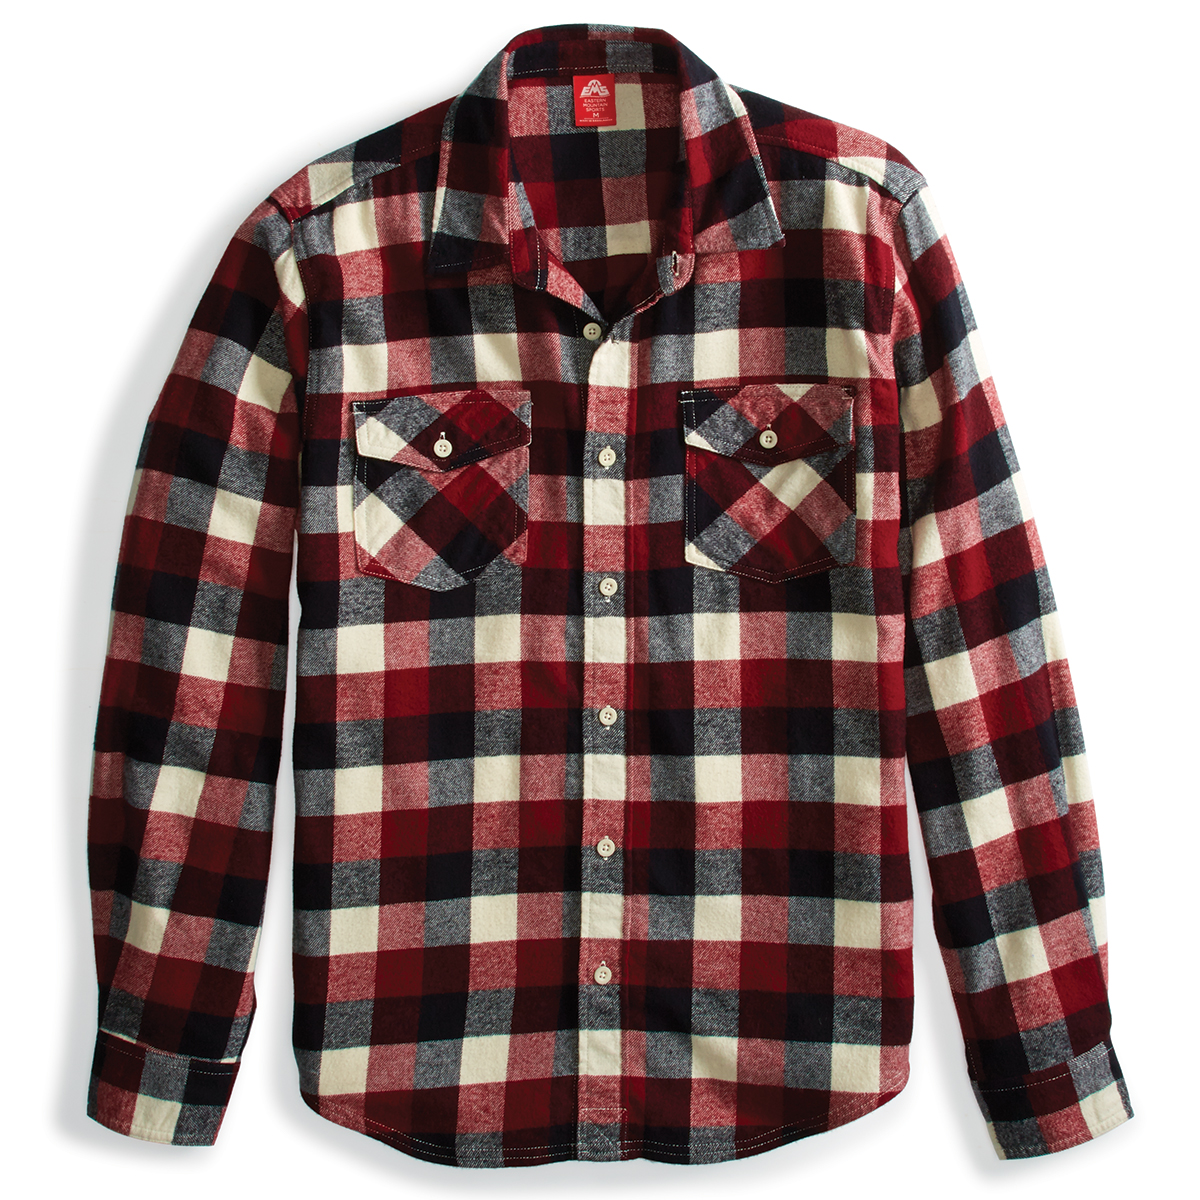 Ems Men's Timber Flannel Long-Sleeve Shirt - Red, S